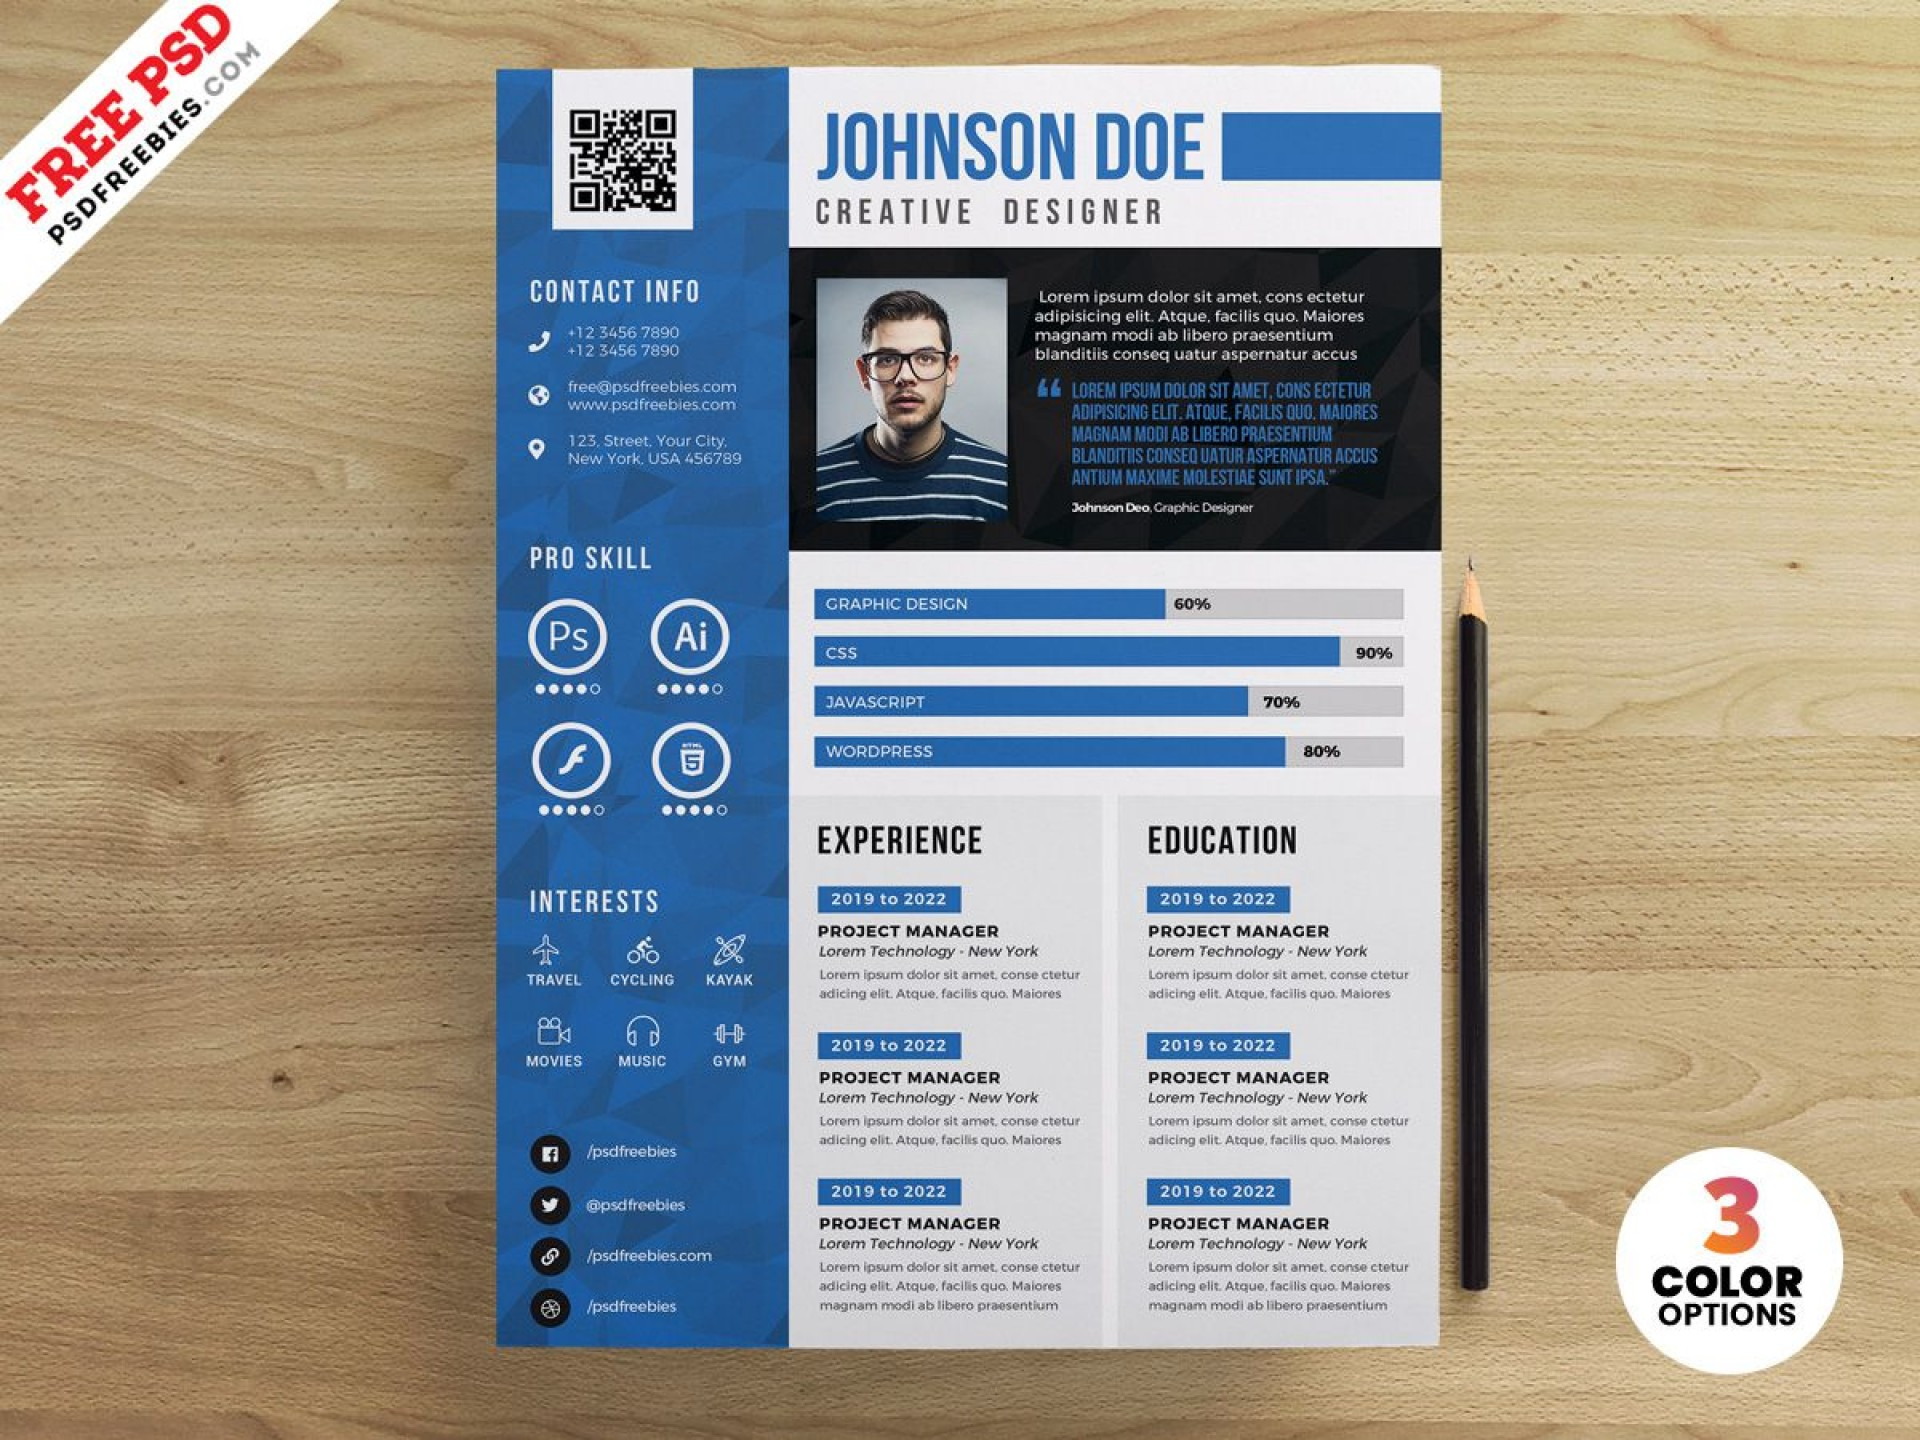 007 Excellent Cv Design Photoshop Template Free Photo  Creative Resume Psd Download1920